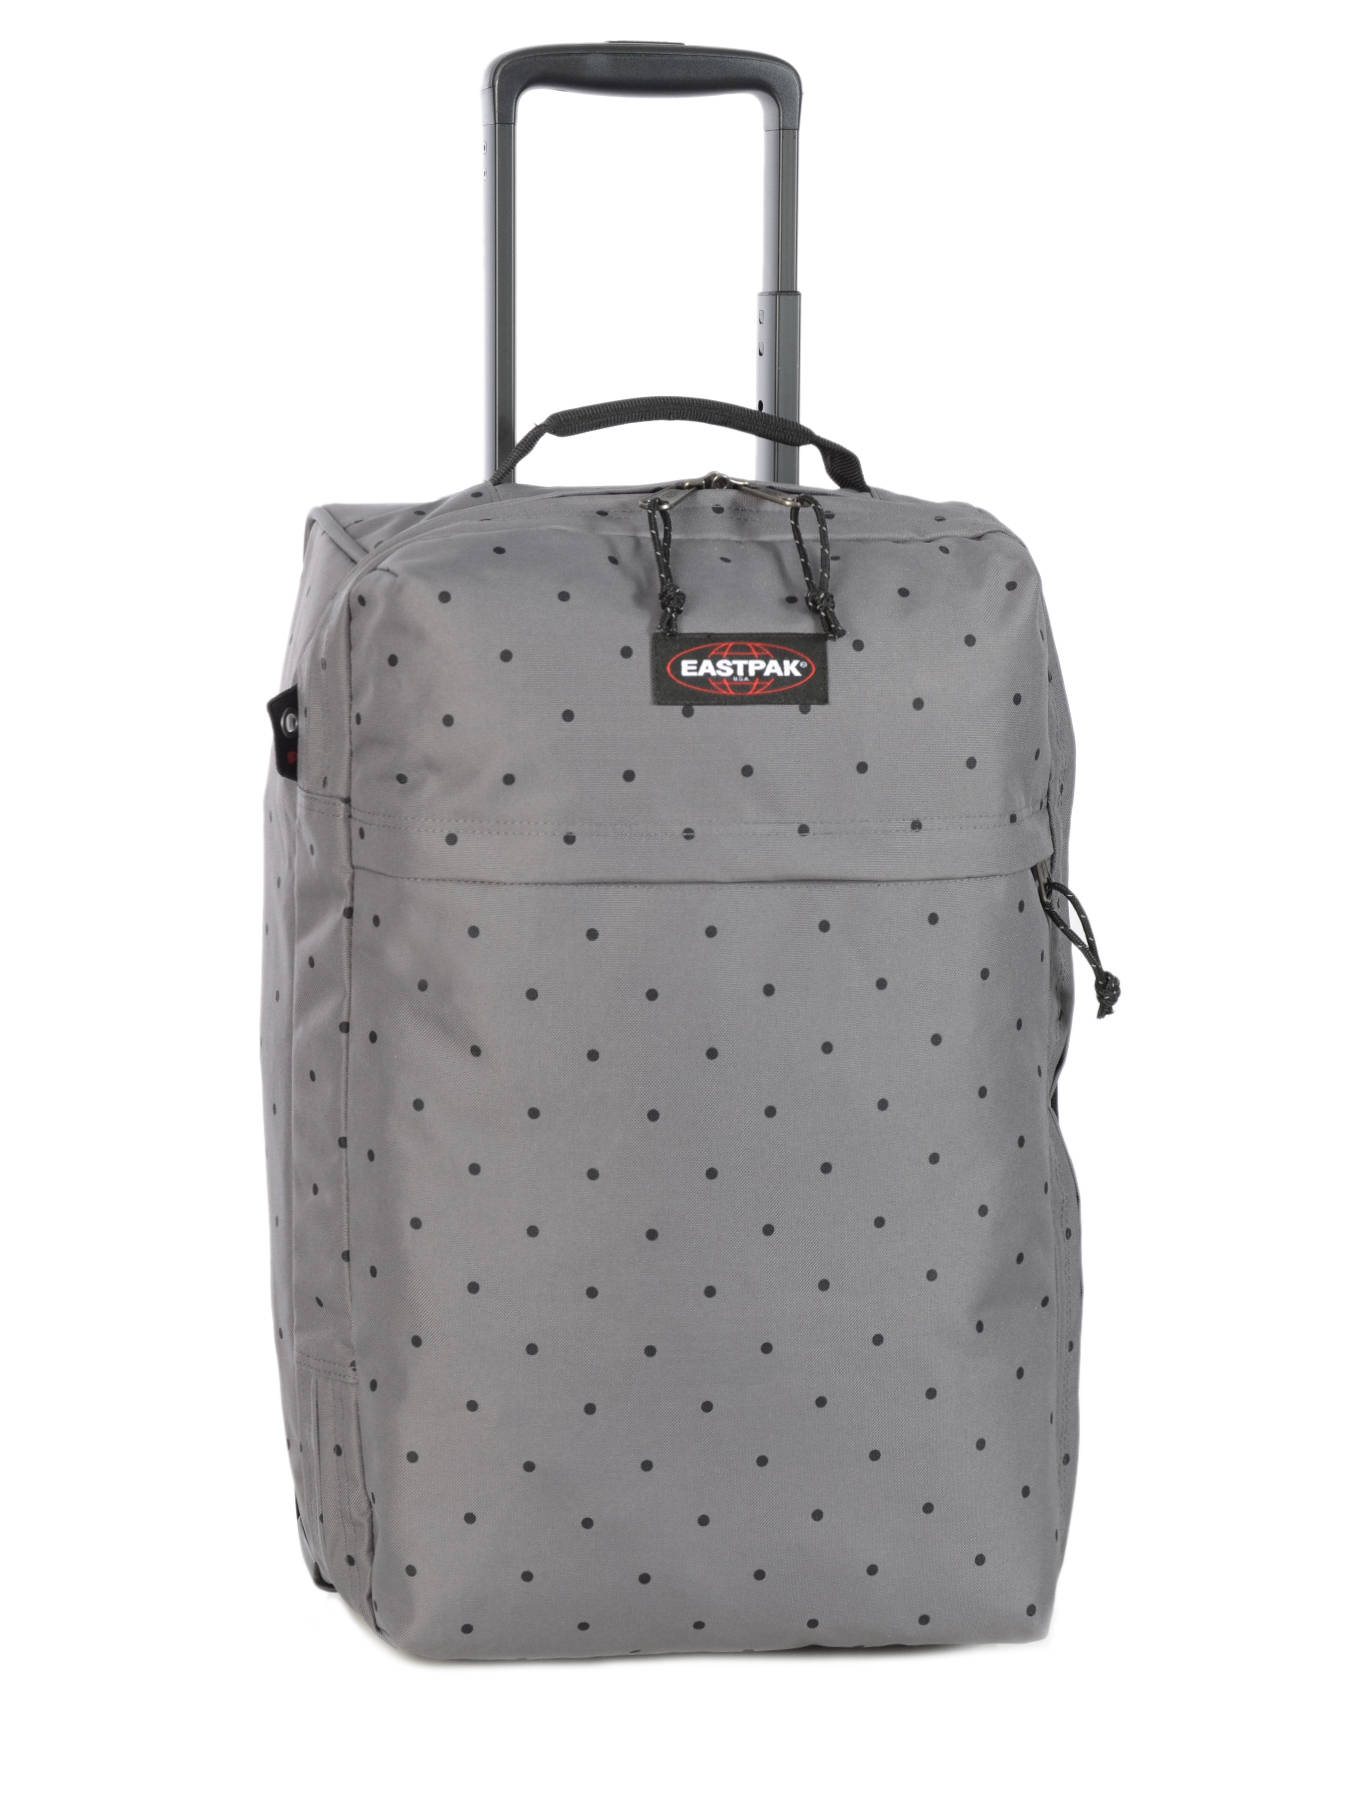 bagages pas chers eastpak pbg authentic luggage dot grey en vente au meilleur prix. Black Bedroom Furniture Sets. Home Design Ideas